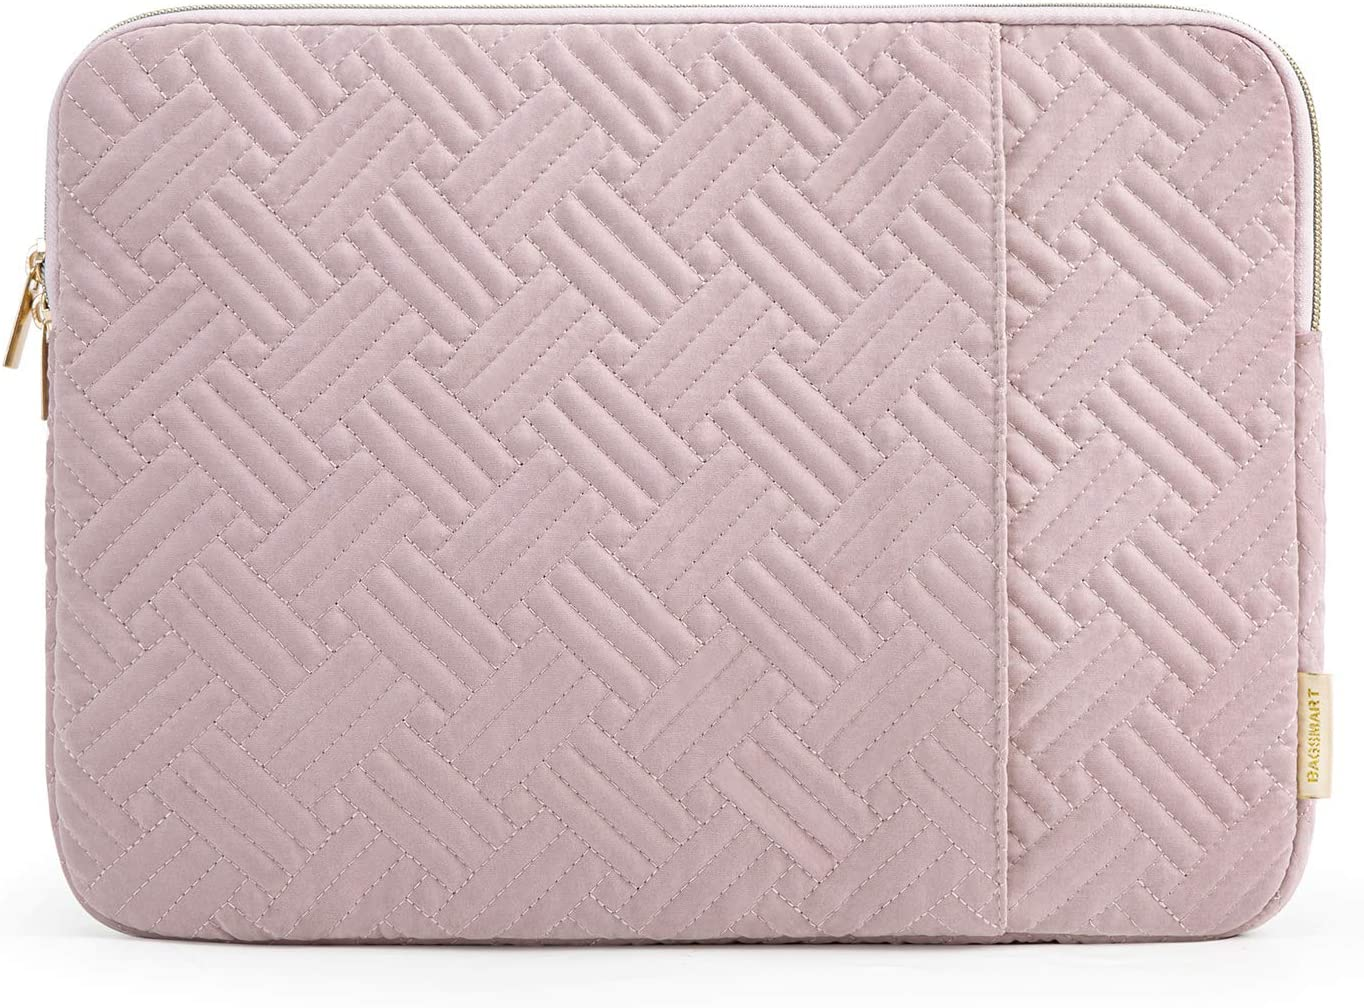 BAGSMART Laptop Sleeve Bag Fits 13-13.3 inch Notebook Computer Water Repellent Protective Case Cover with Pocket, Pink